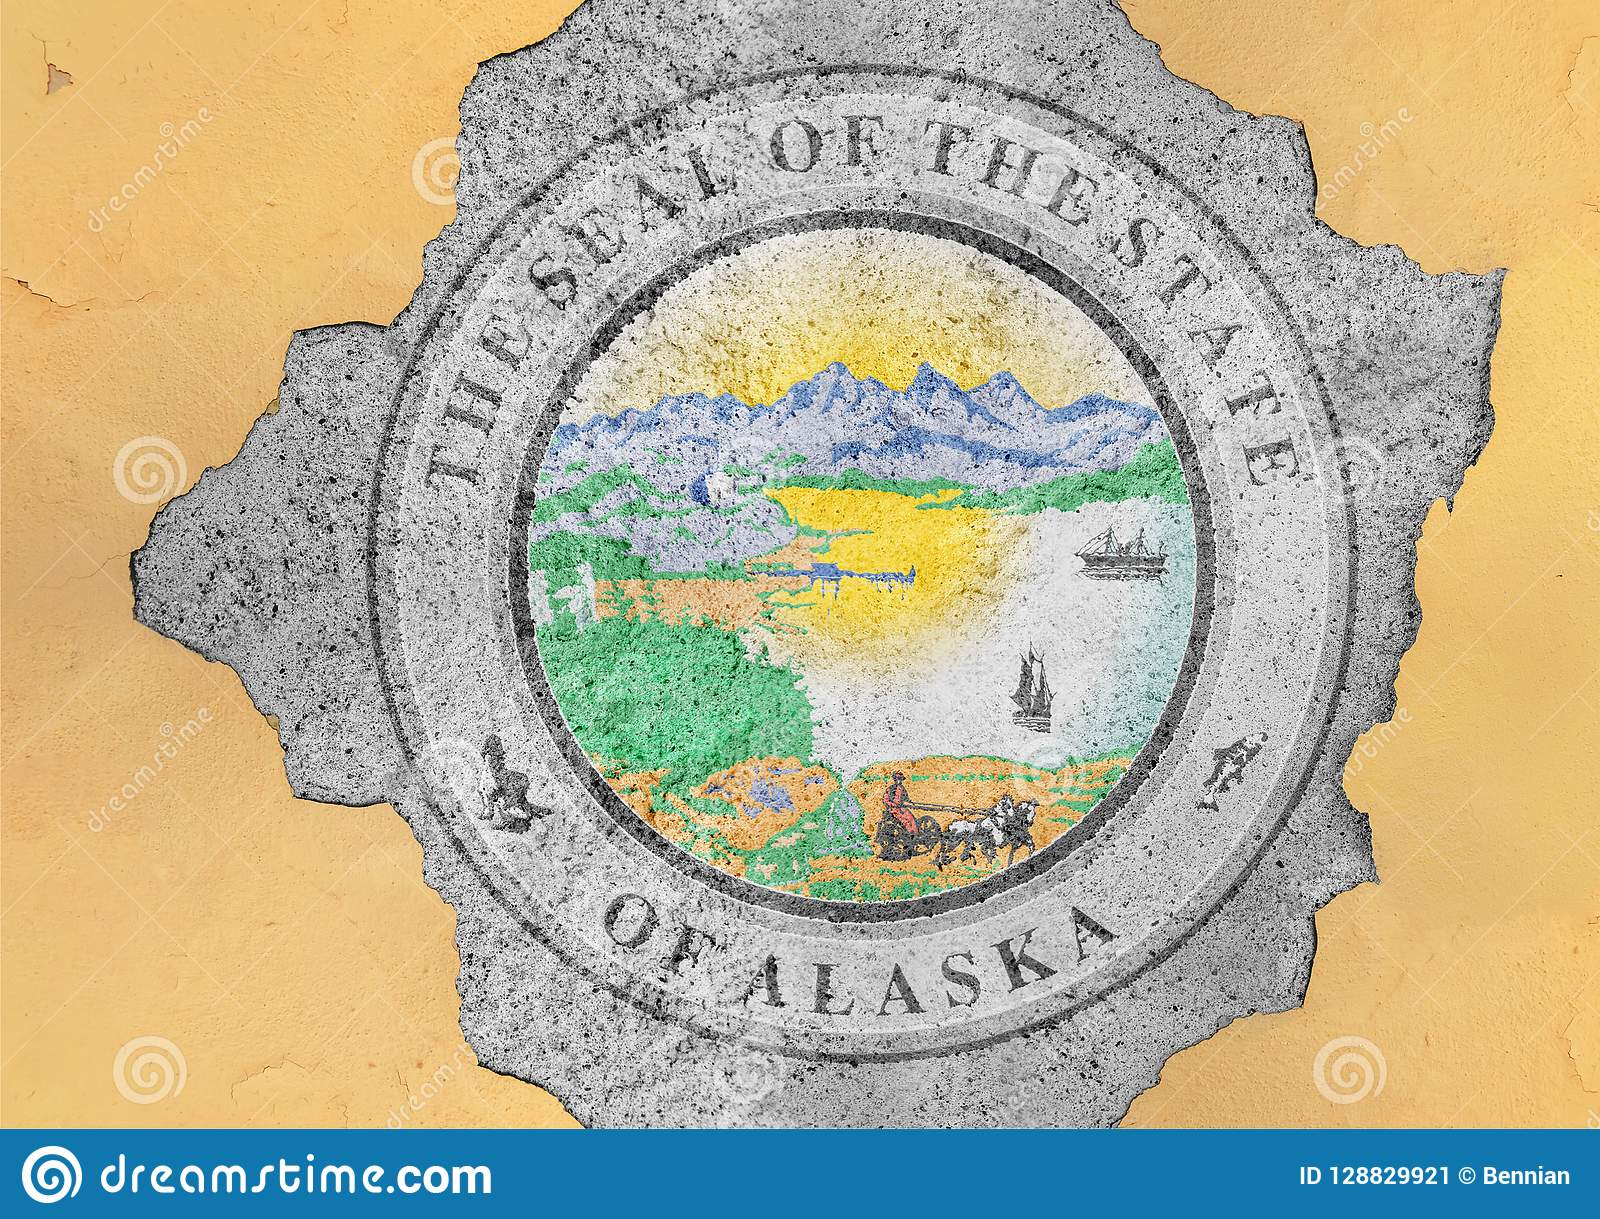 US state Alaska seal flag painted on concrete hole and cracked wall